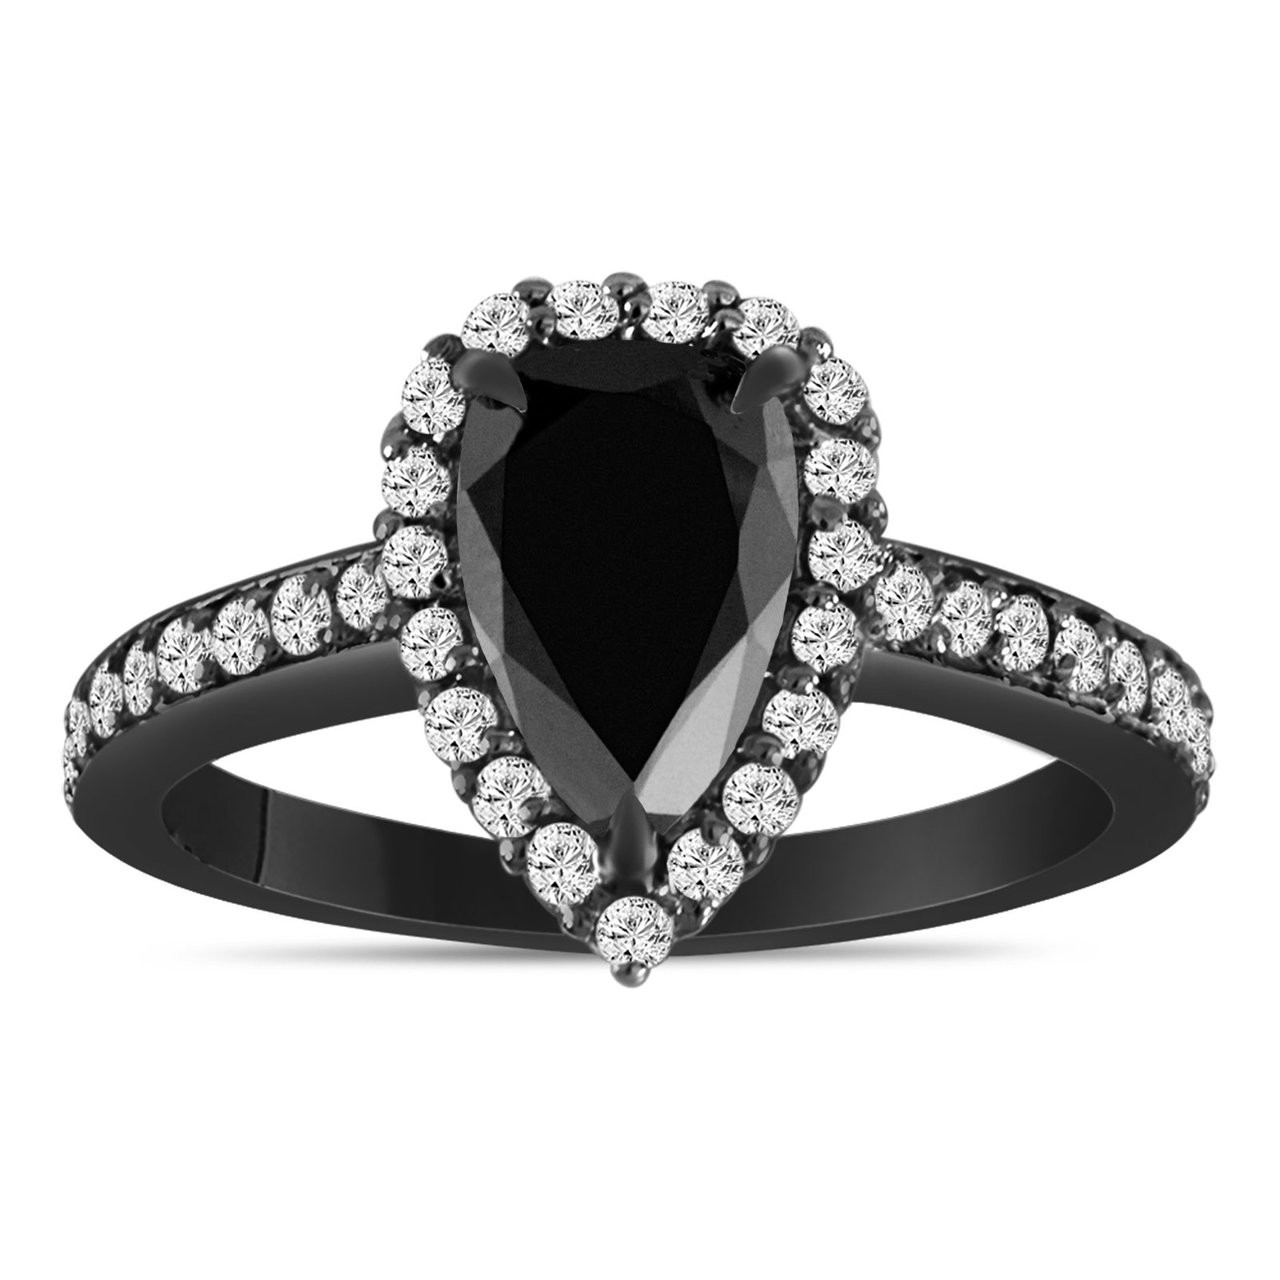 b9aa79ccd0bda 1.75 Carat Pear Shaped Black Diamond Engagement Ring, Black Diamond Wedding  Ring, Halo Vintage Ring, 14k Black Gold Unique Handmade Certified